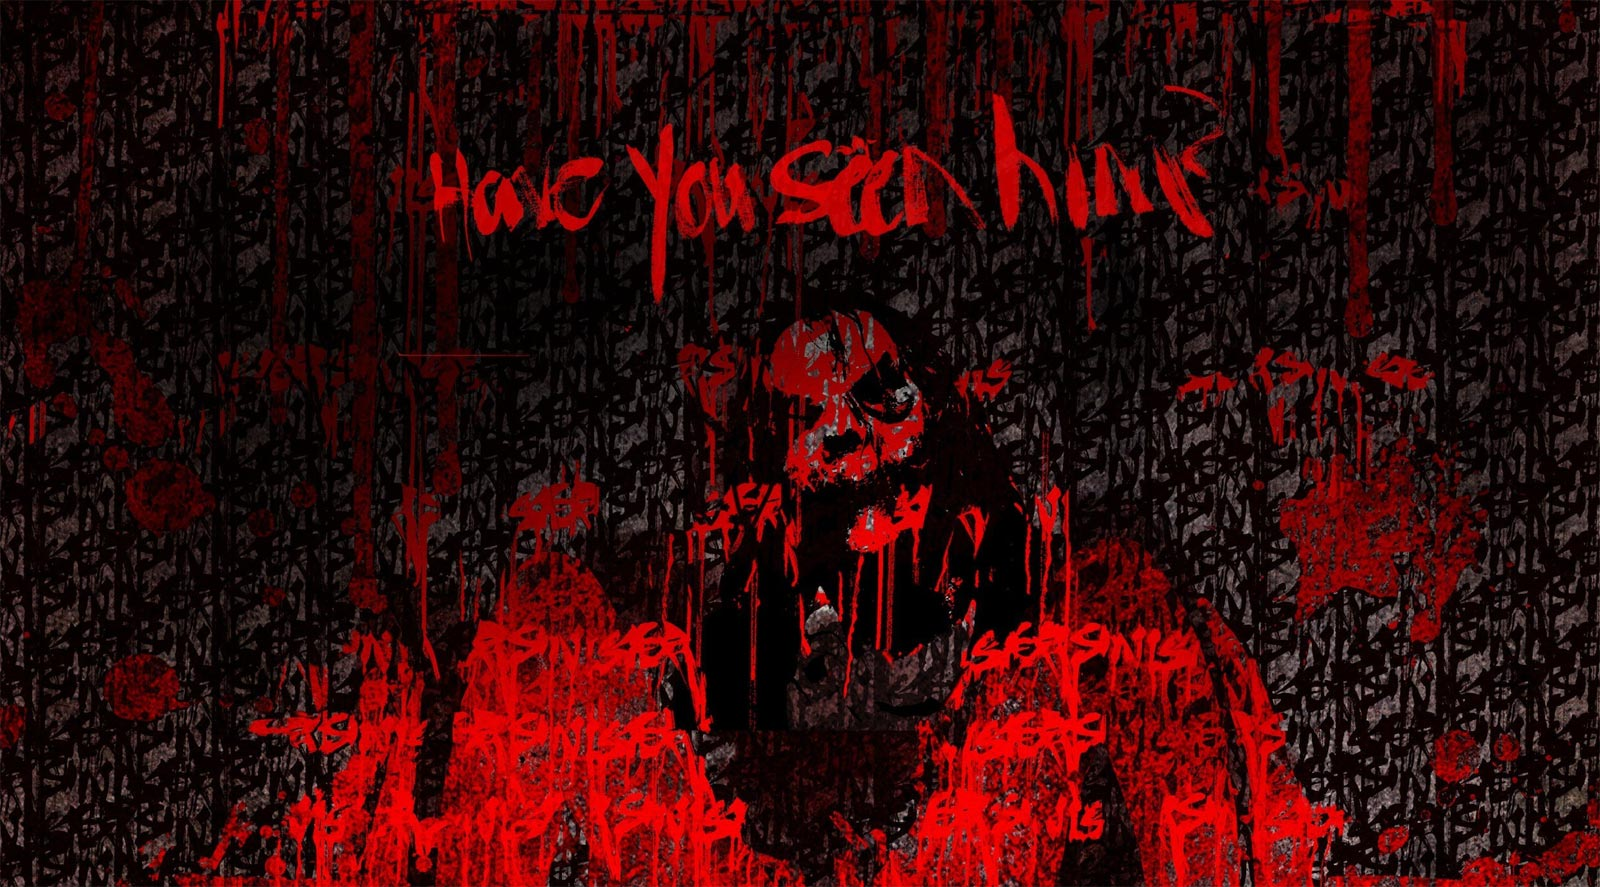 Two New SINISTER Posters: Have You Seen Him ? - FilmoFilia